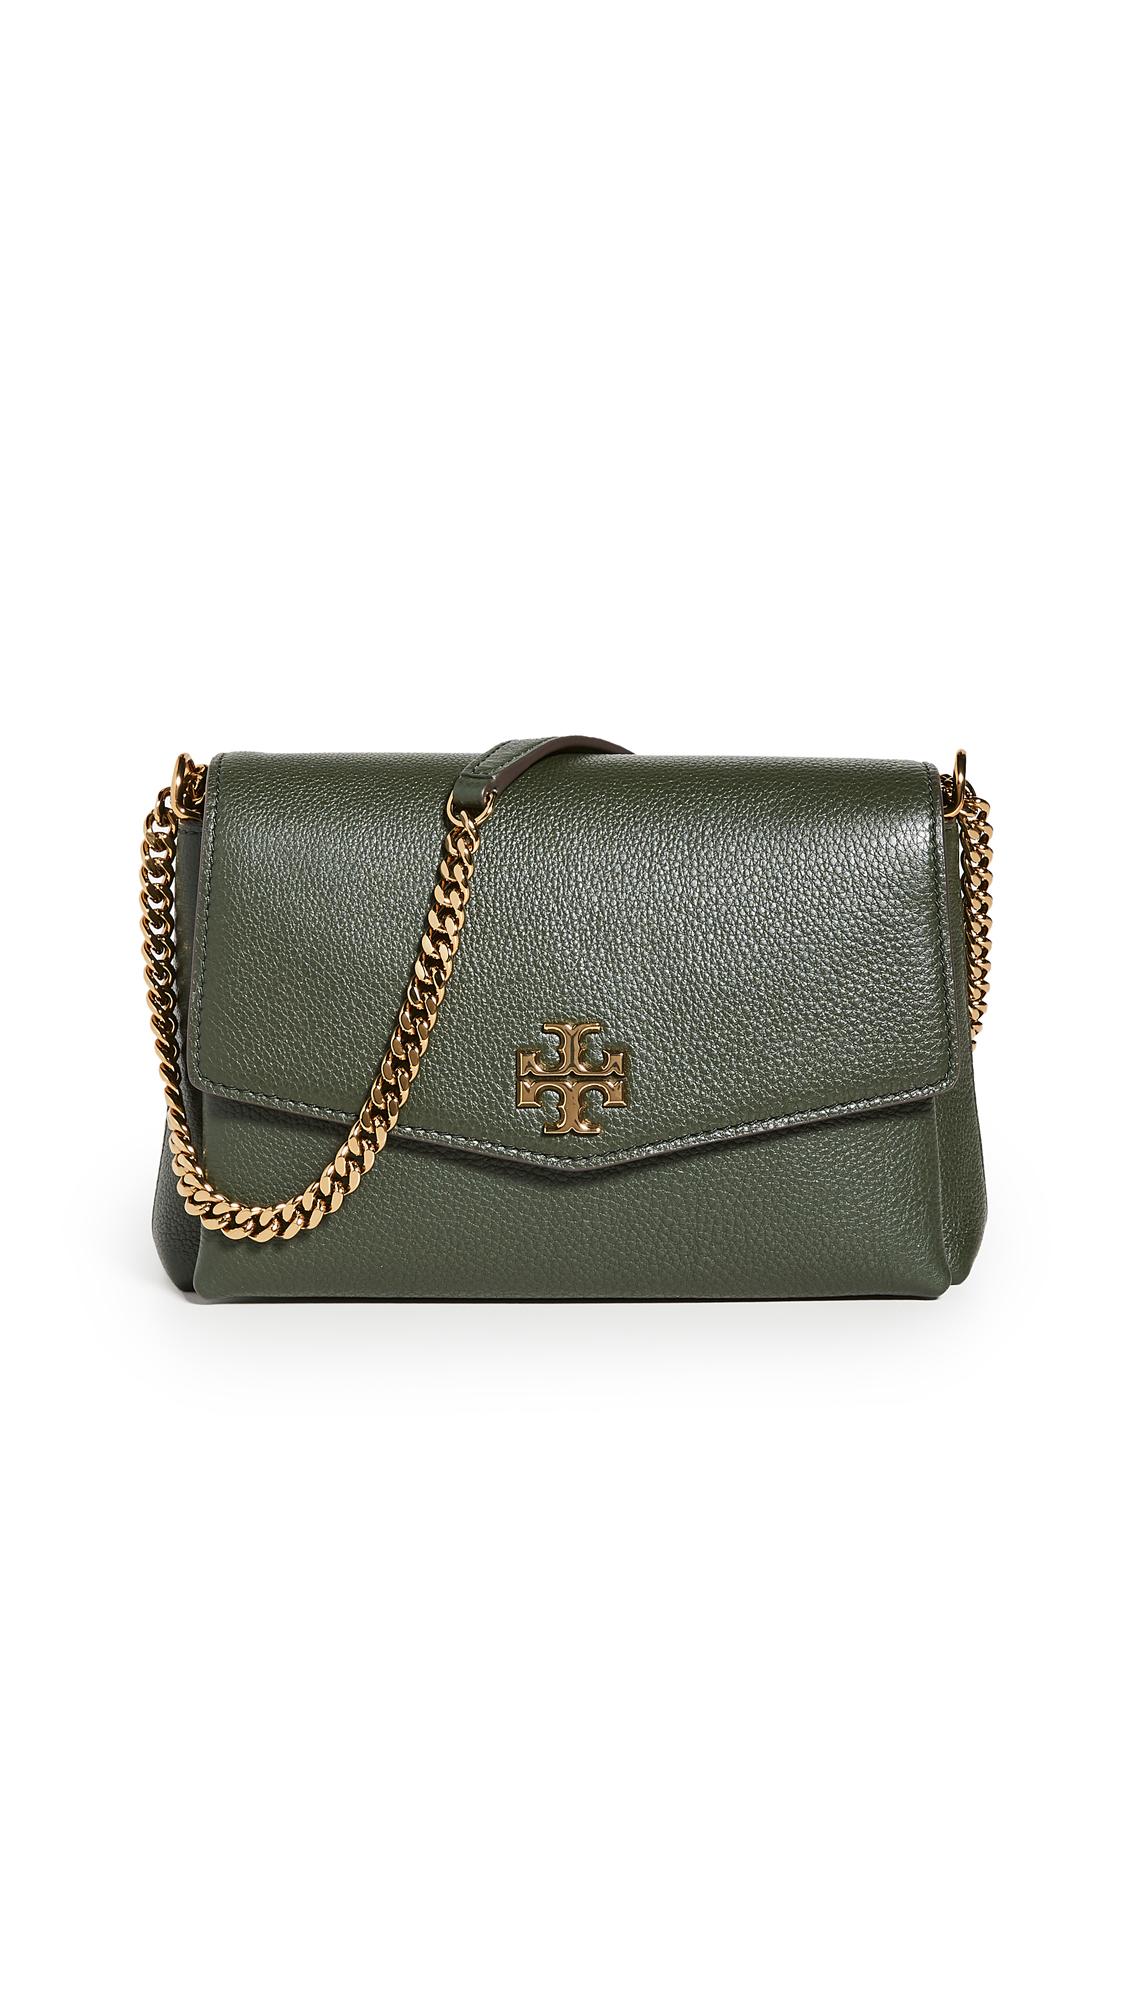 Tory Burch Kira Pebbled Small Convertible Shoulder Bag